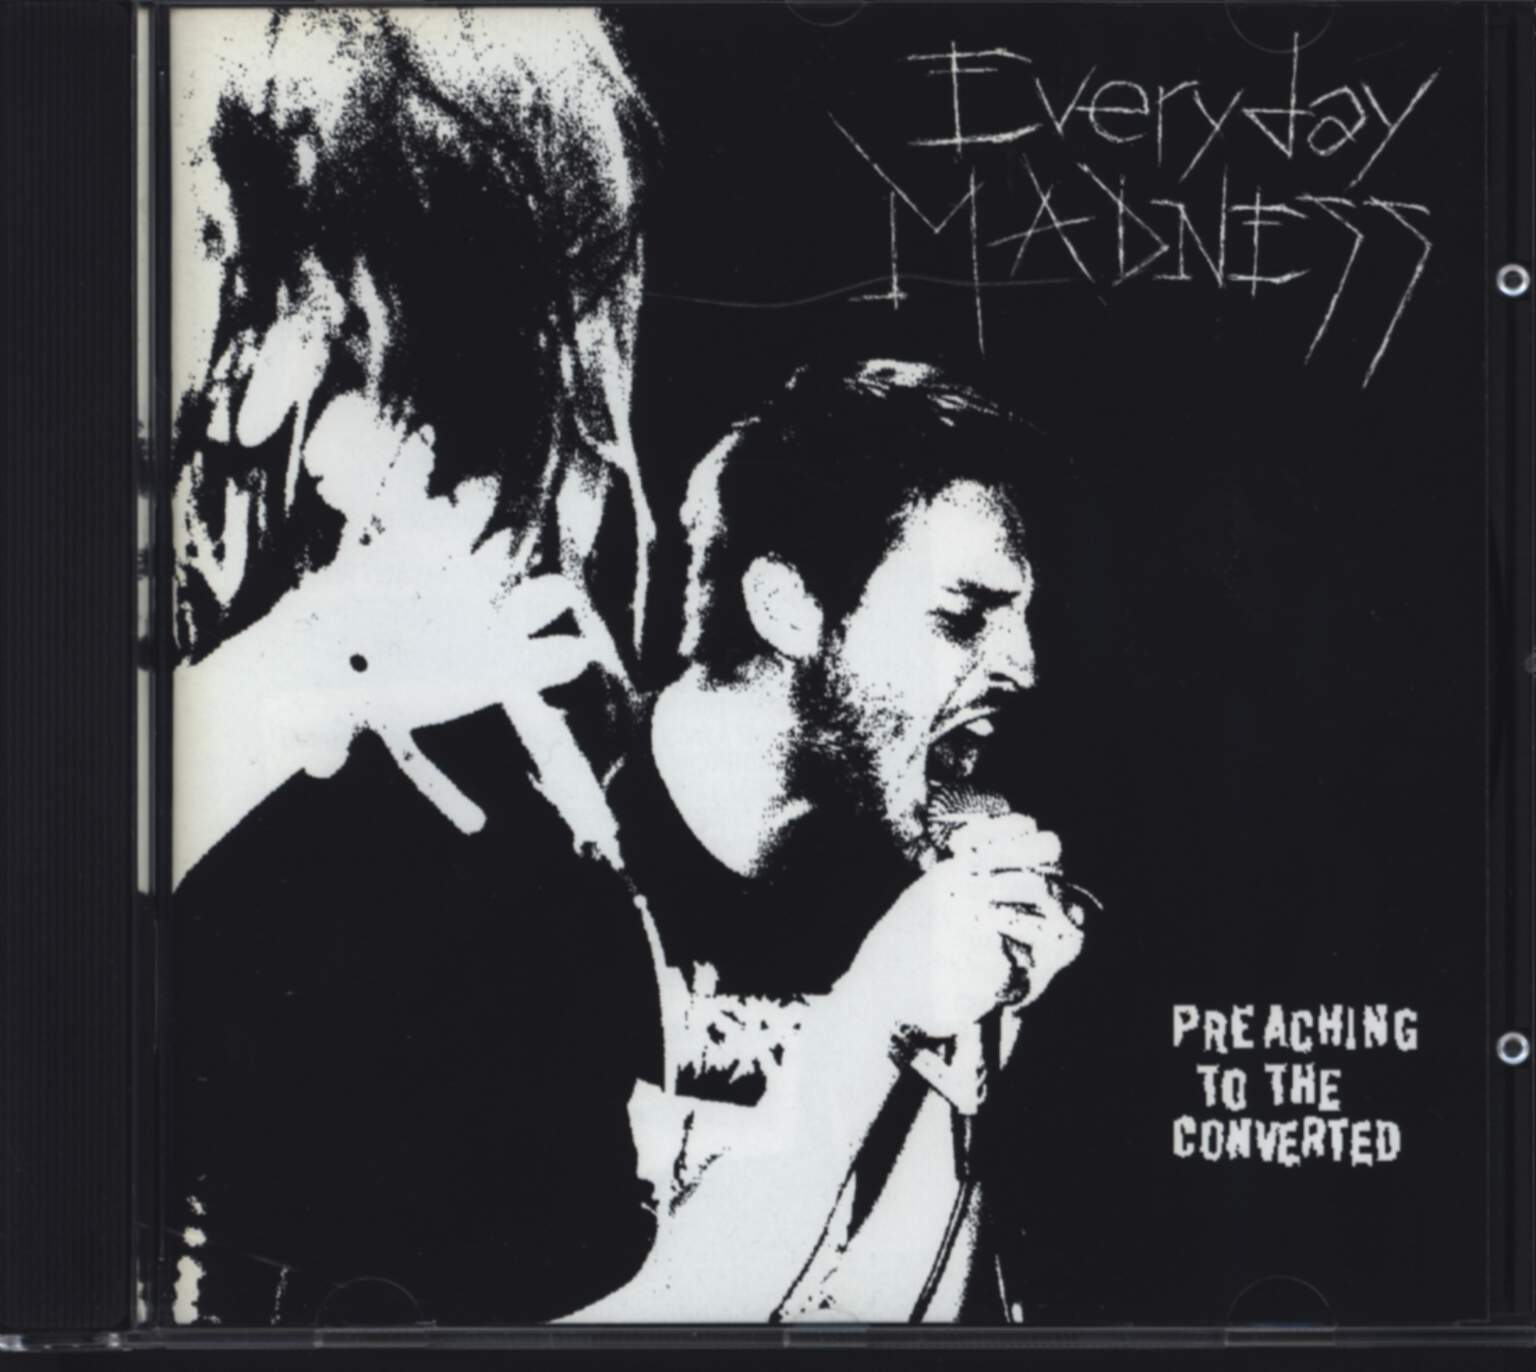 Everyday Madness: Preaching To The Converted, CD